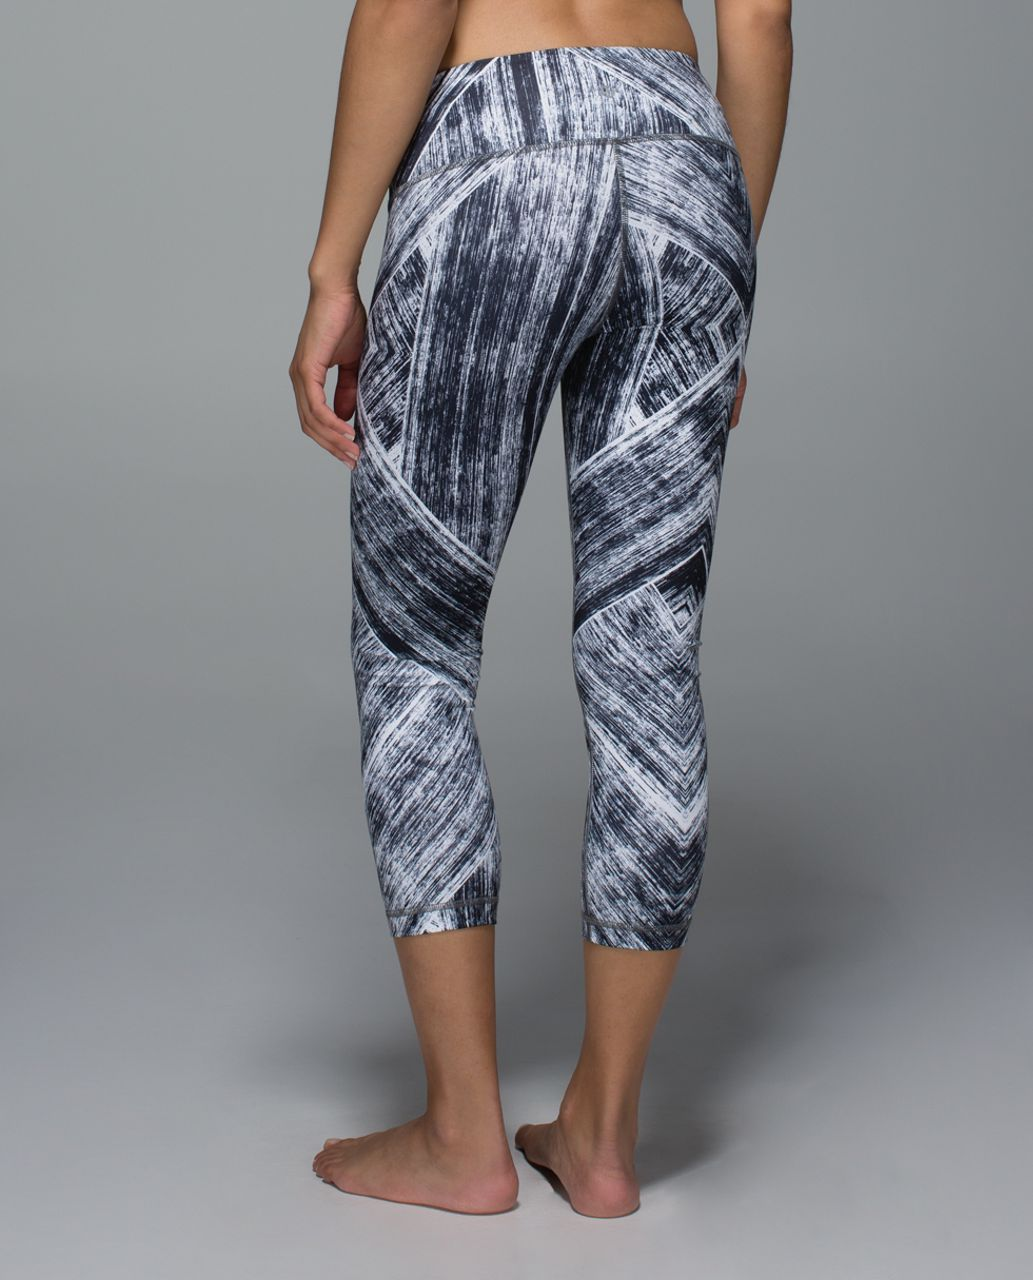 Lululemon Wunder Under Crop II *Full-On Luon - Heat Wave White Black